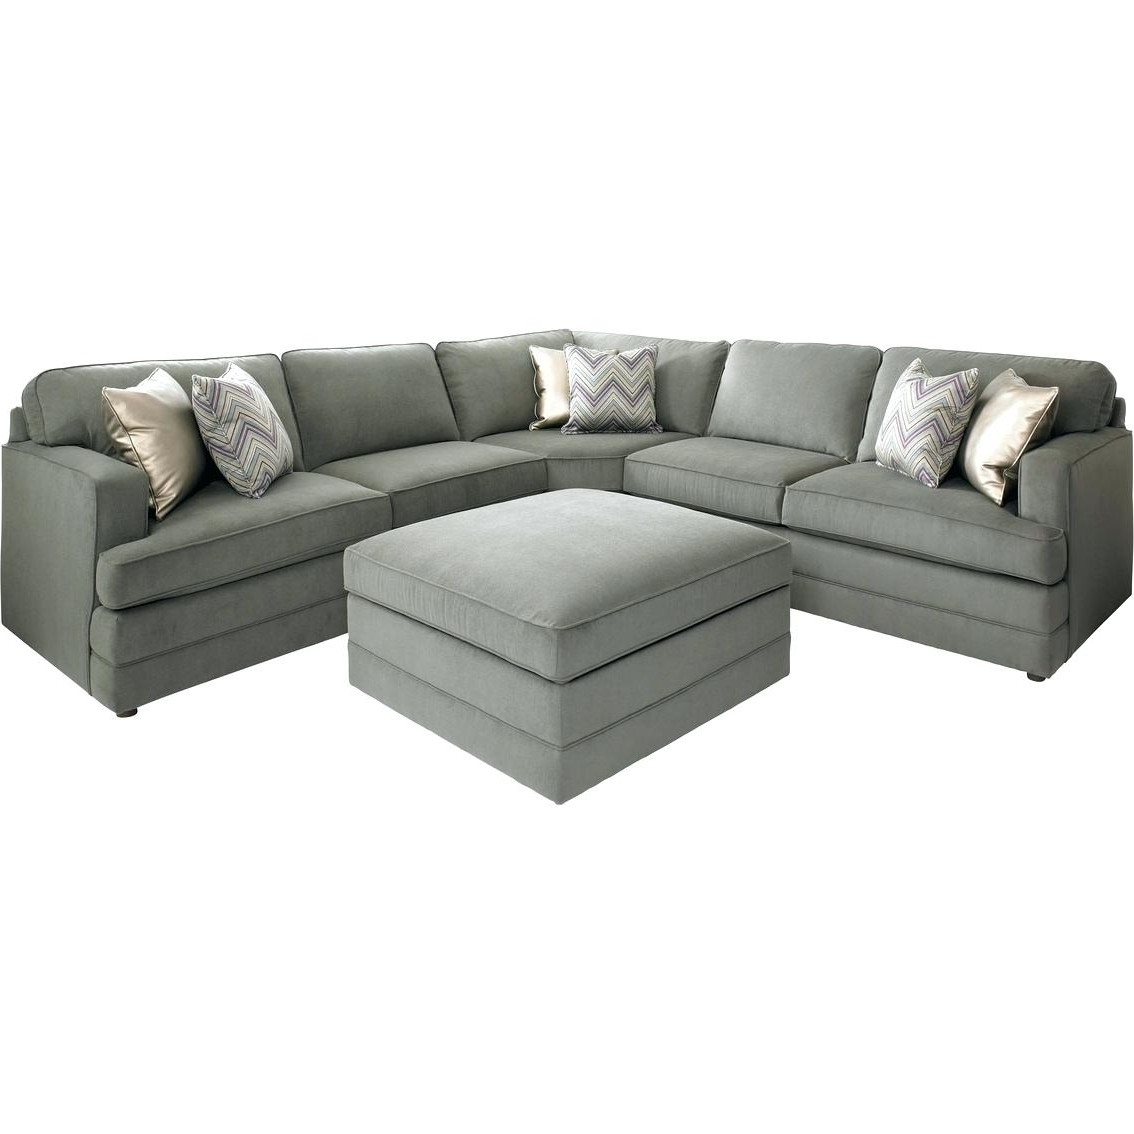 Trendy Sectional Sofa Sale Sa Couches For Near Me Liquidation Toronto In London Ontario Sectional Sofas (View 9 of 20)